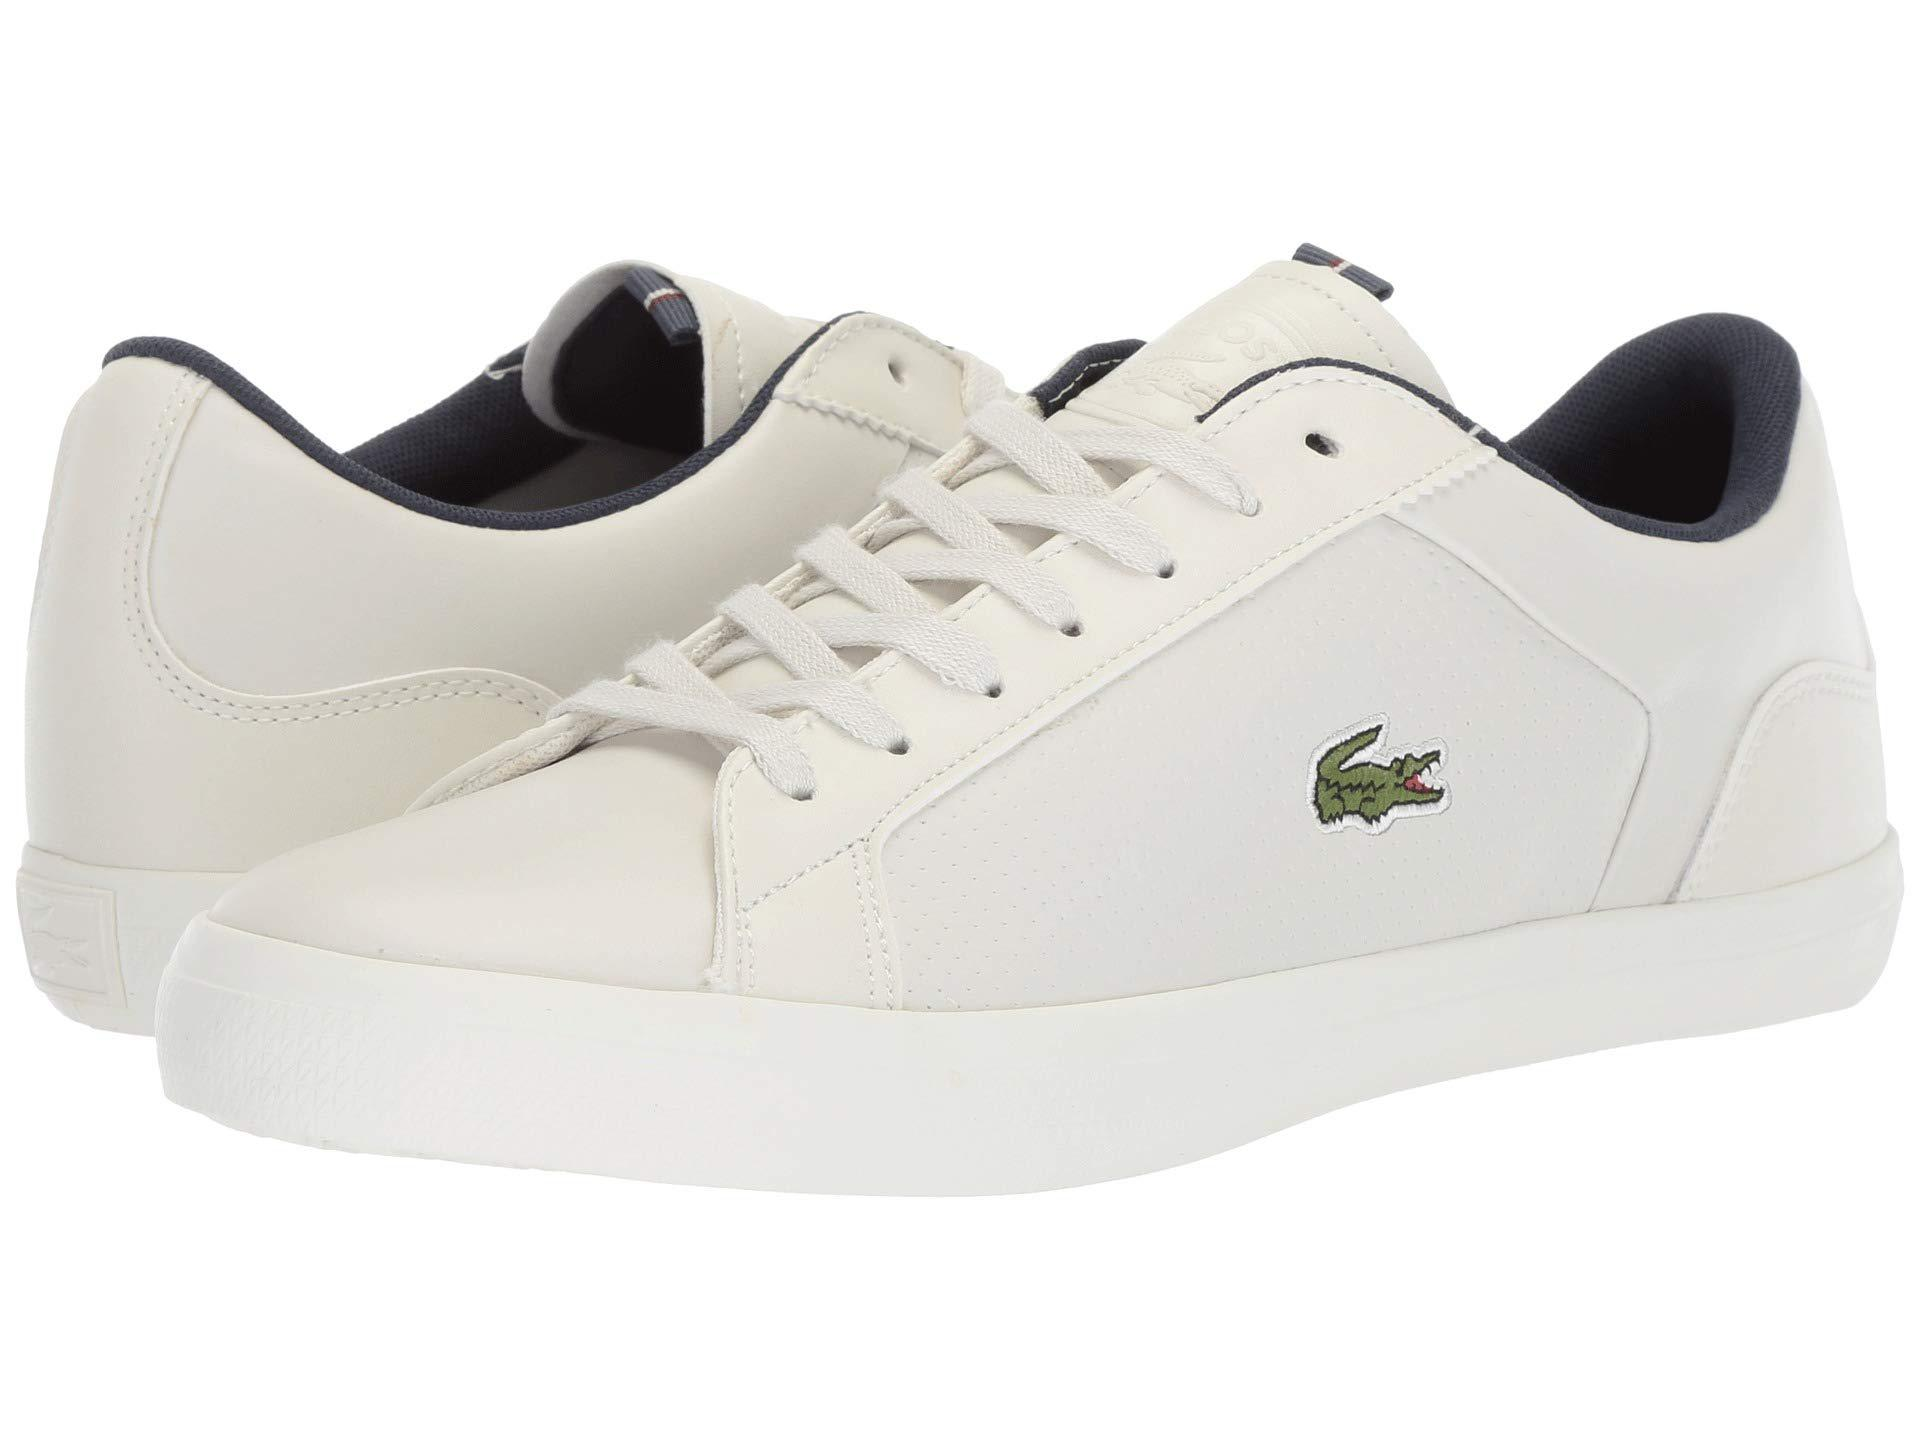 86e20c5a132afa Lyst - Lacoste Lerond 418 1 (brown natural) Men s Shoes in White for Men